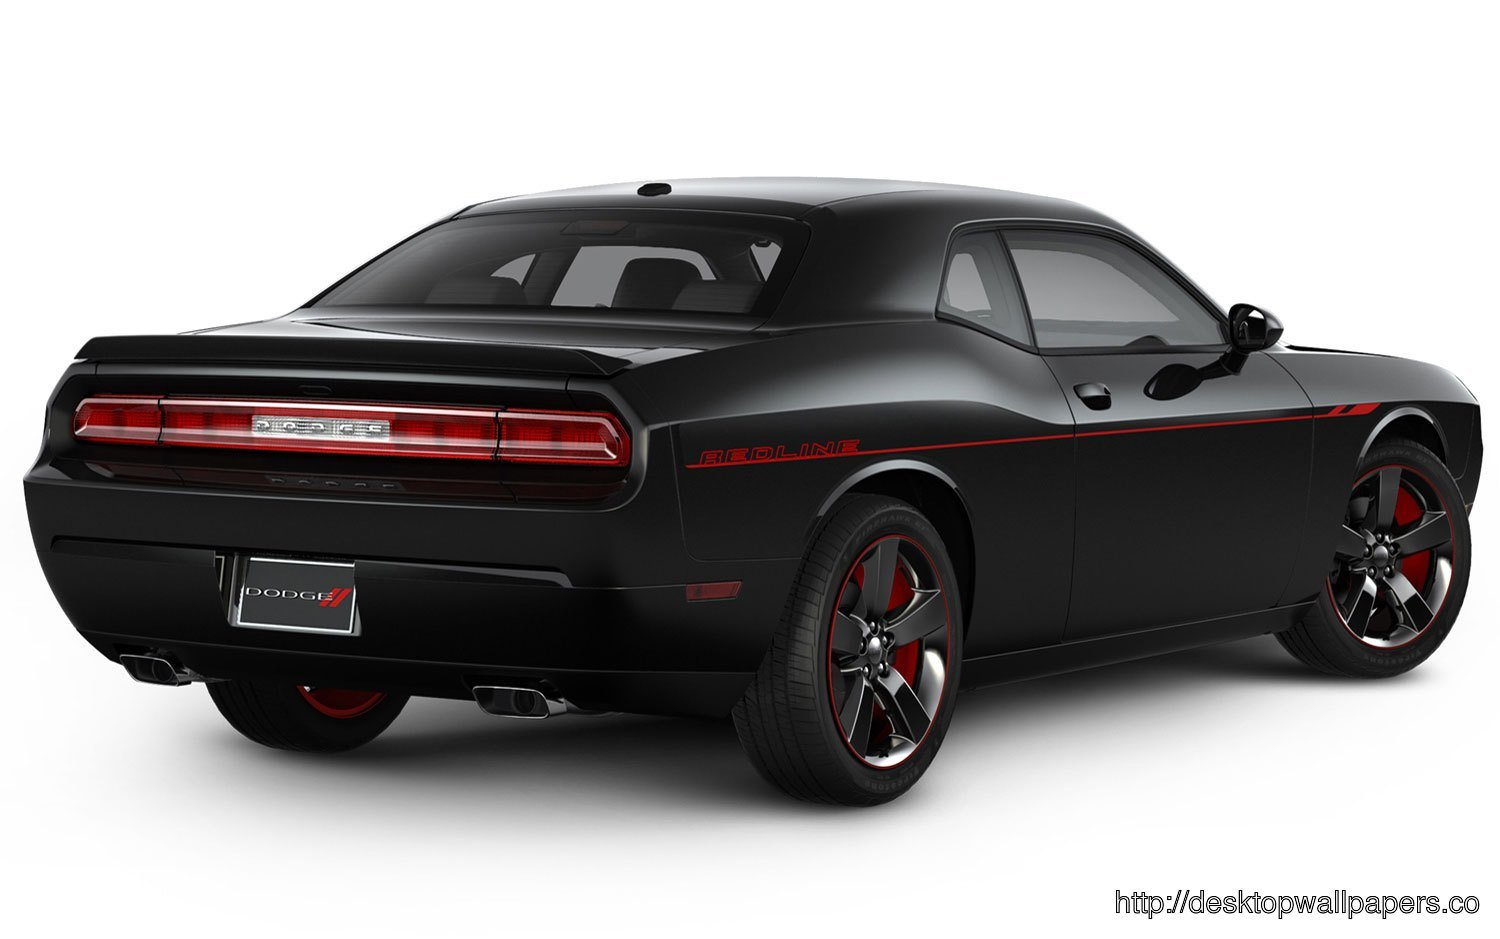 New Dodge Challenger Hd Desktop Wallpapers Free On This Month